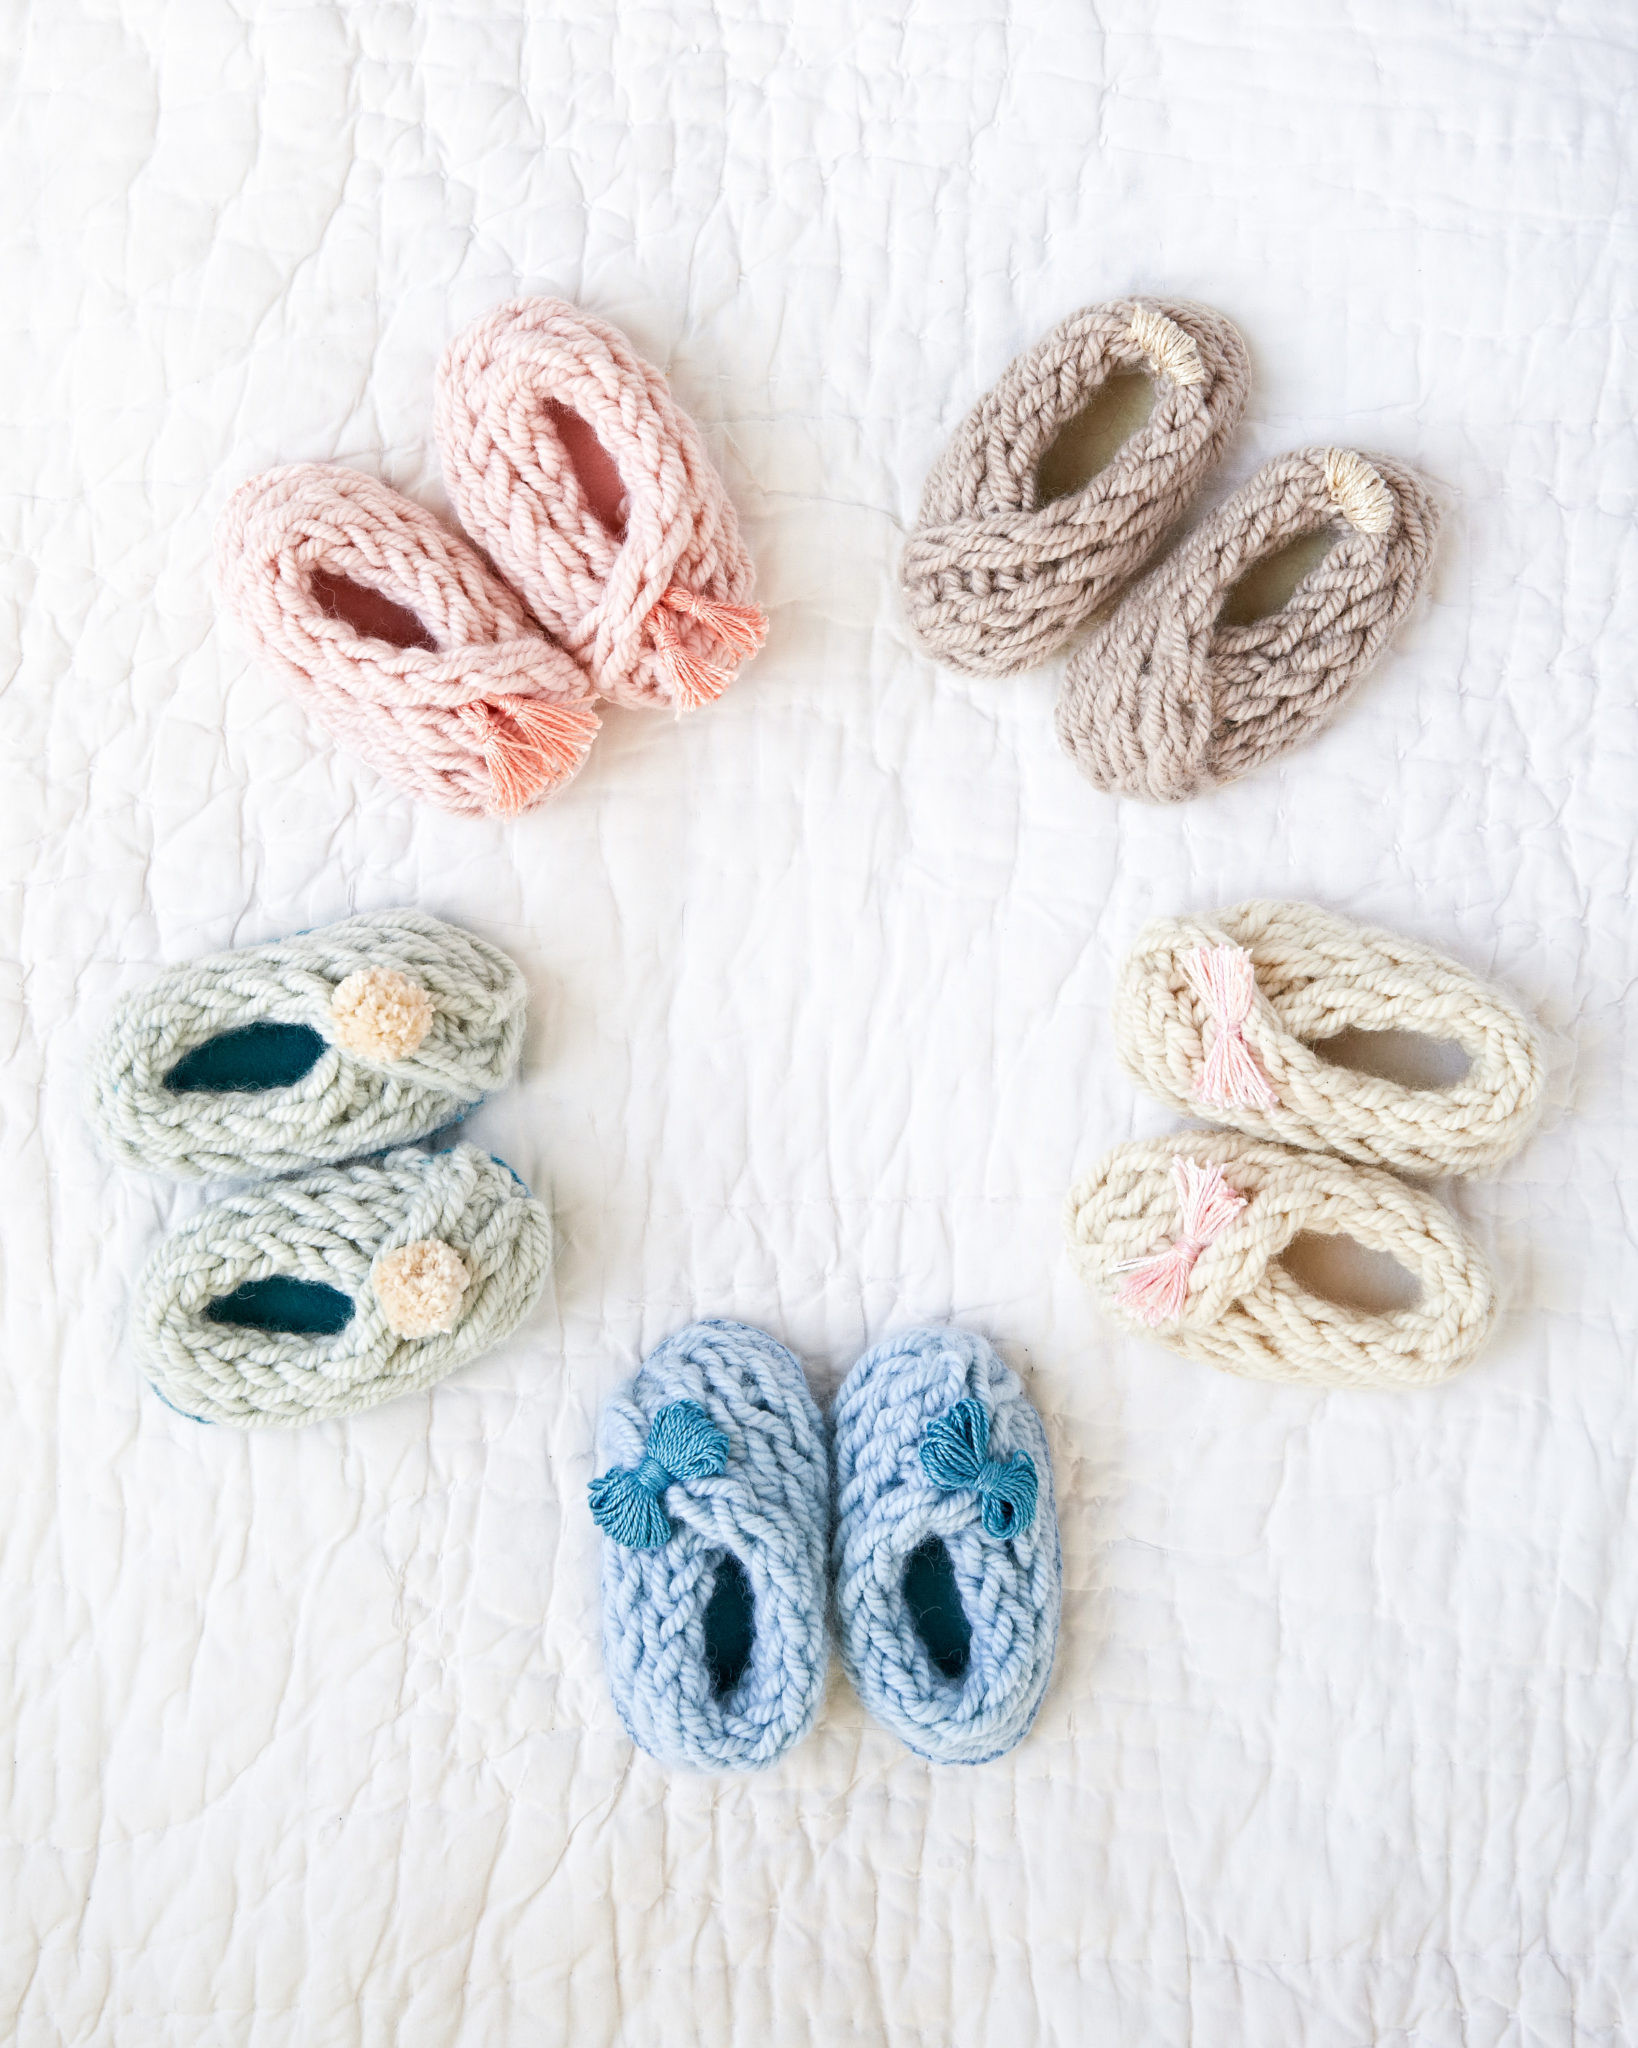 Unique Five Fave Finger Knitting Projects From Knitting without Knitting Ideas Of Superb 43 Images Knitting Ideas